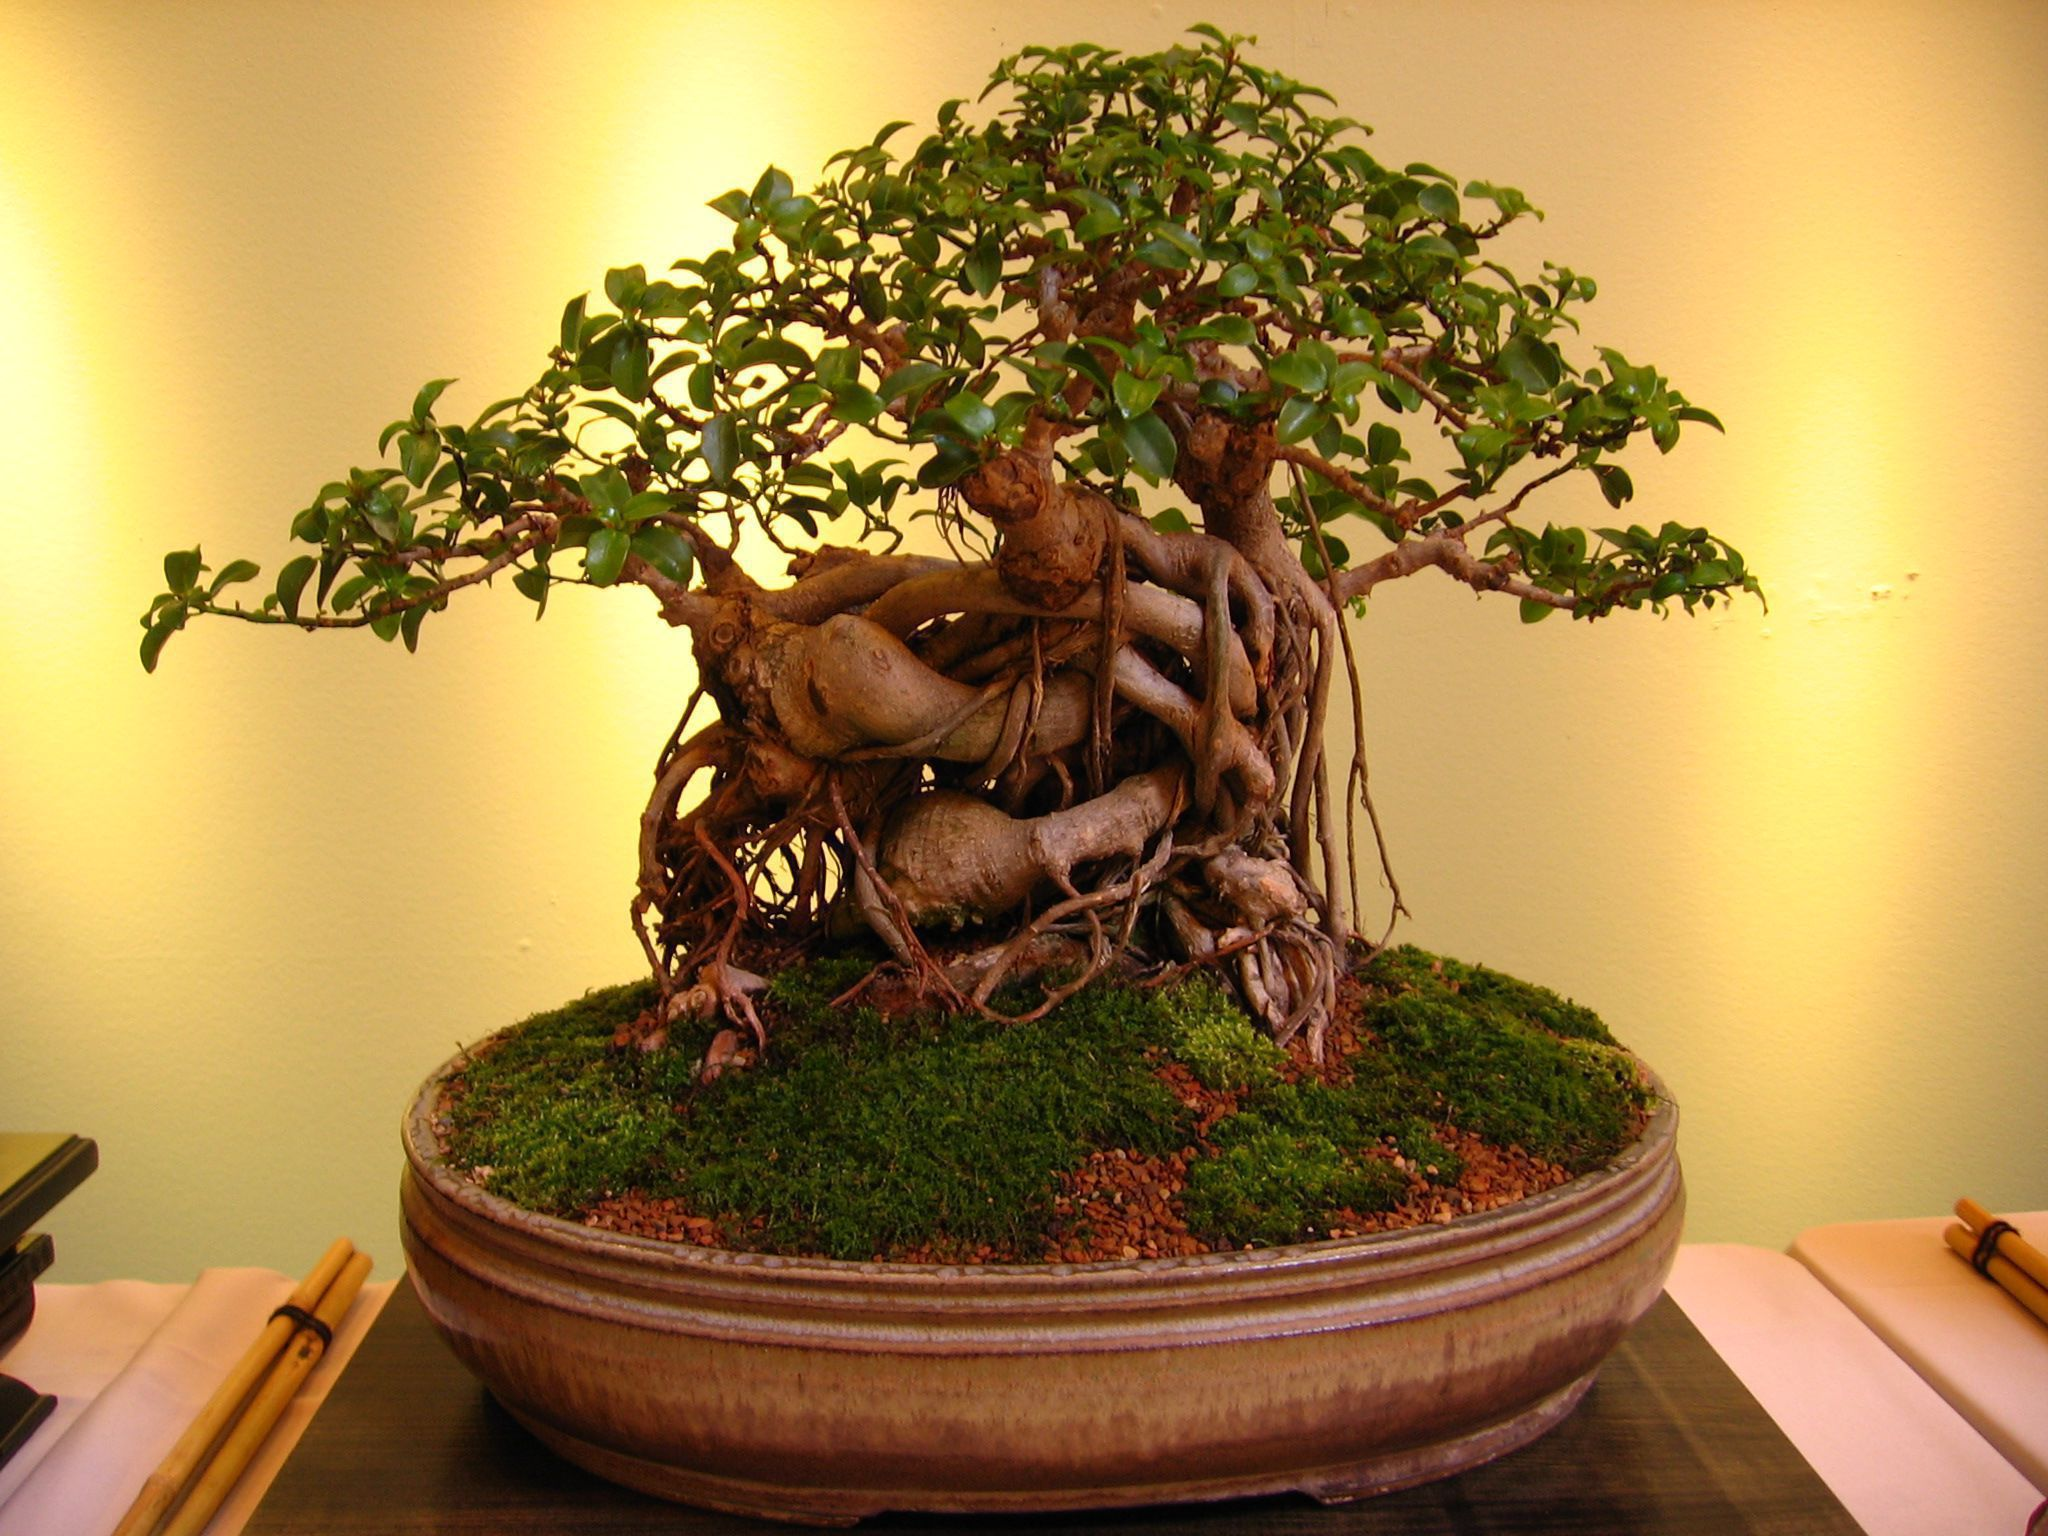 10 Things To Avoid When Growing Bonsai Trees